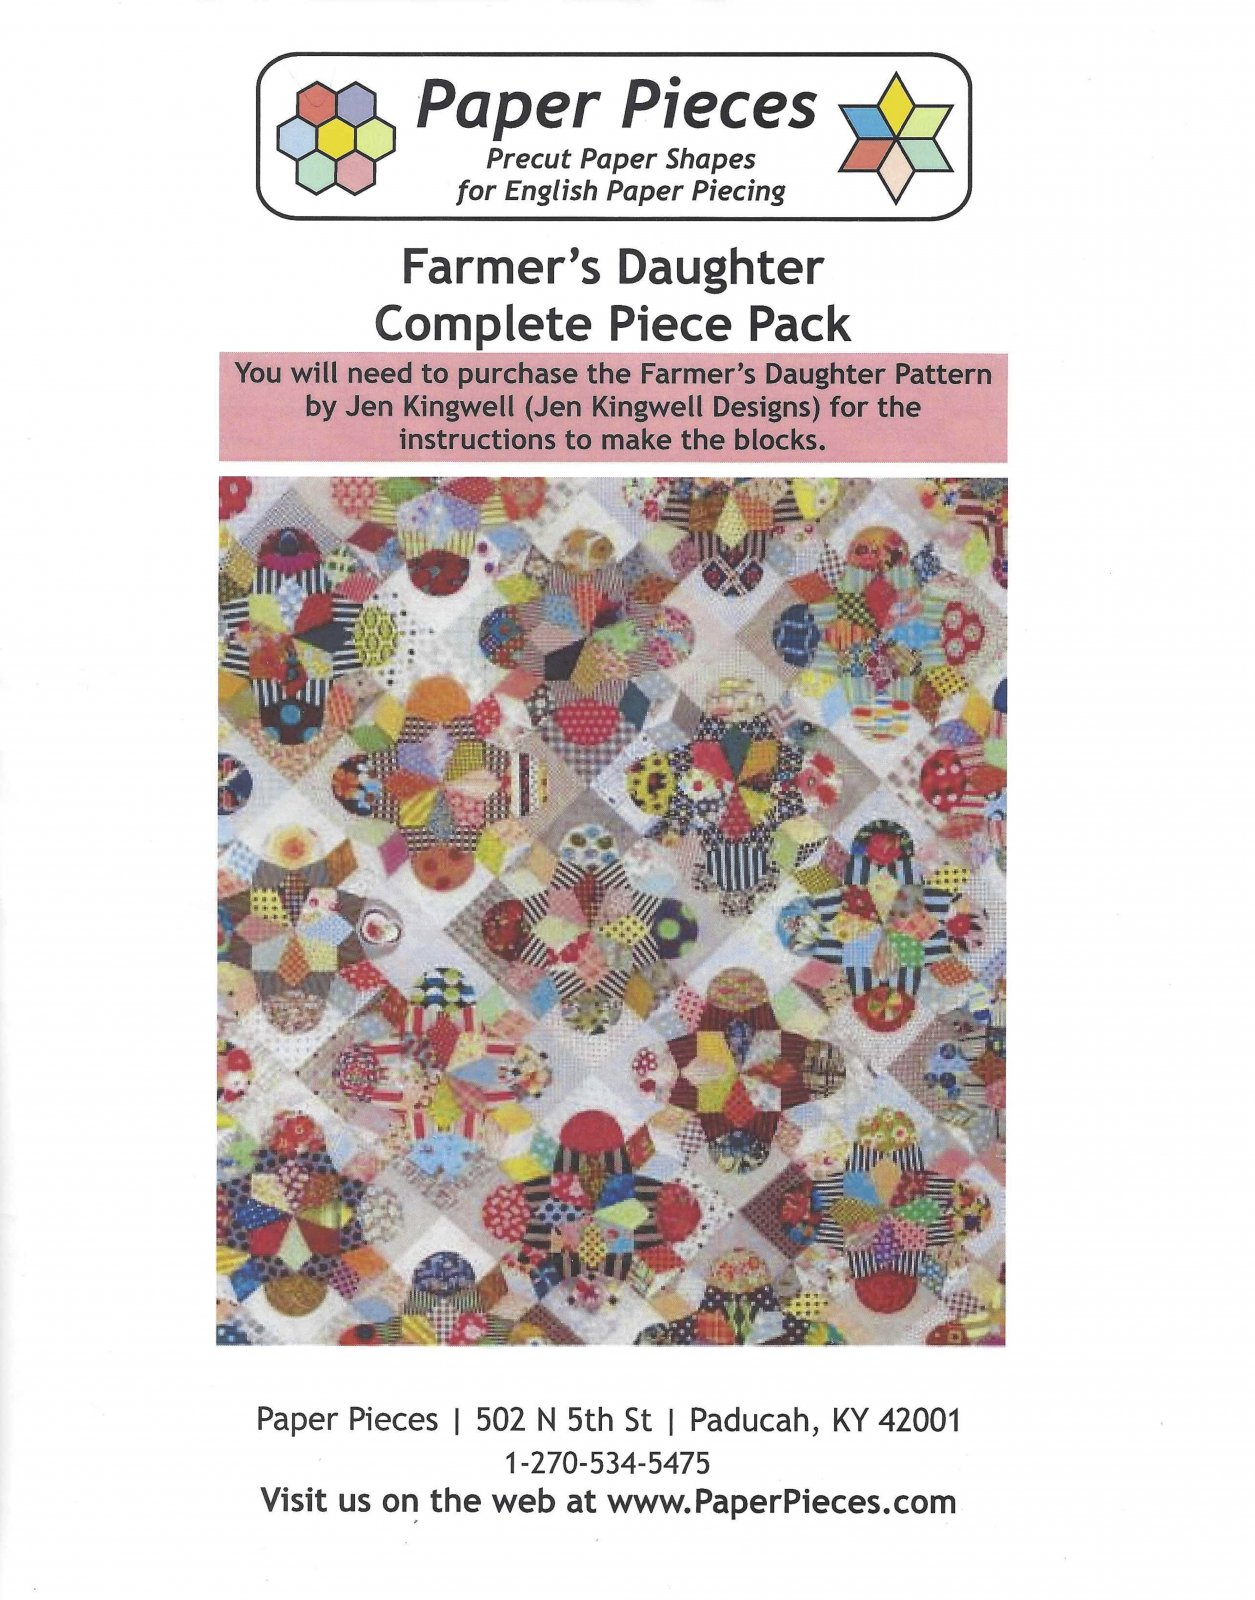 I'm A Farmer's Daughter By Jen Kingwell - Paper Pieces - Complete Piece Pack - Includes Pattern